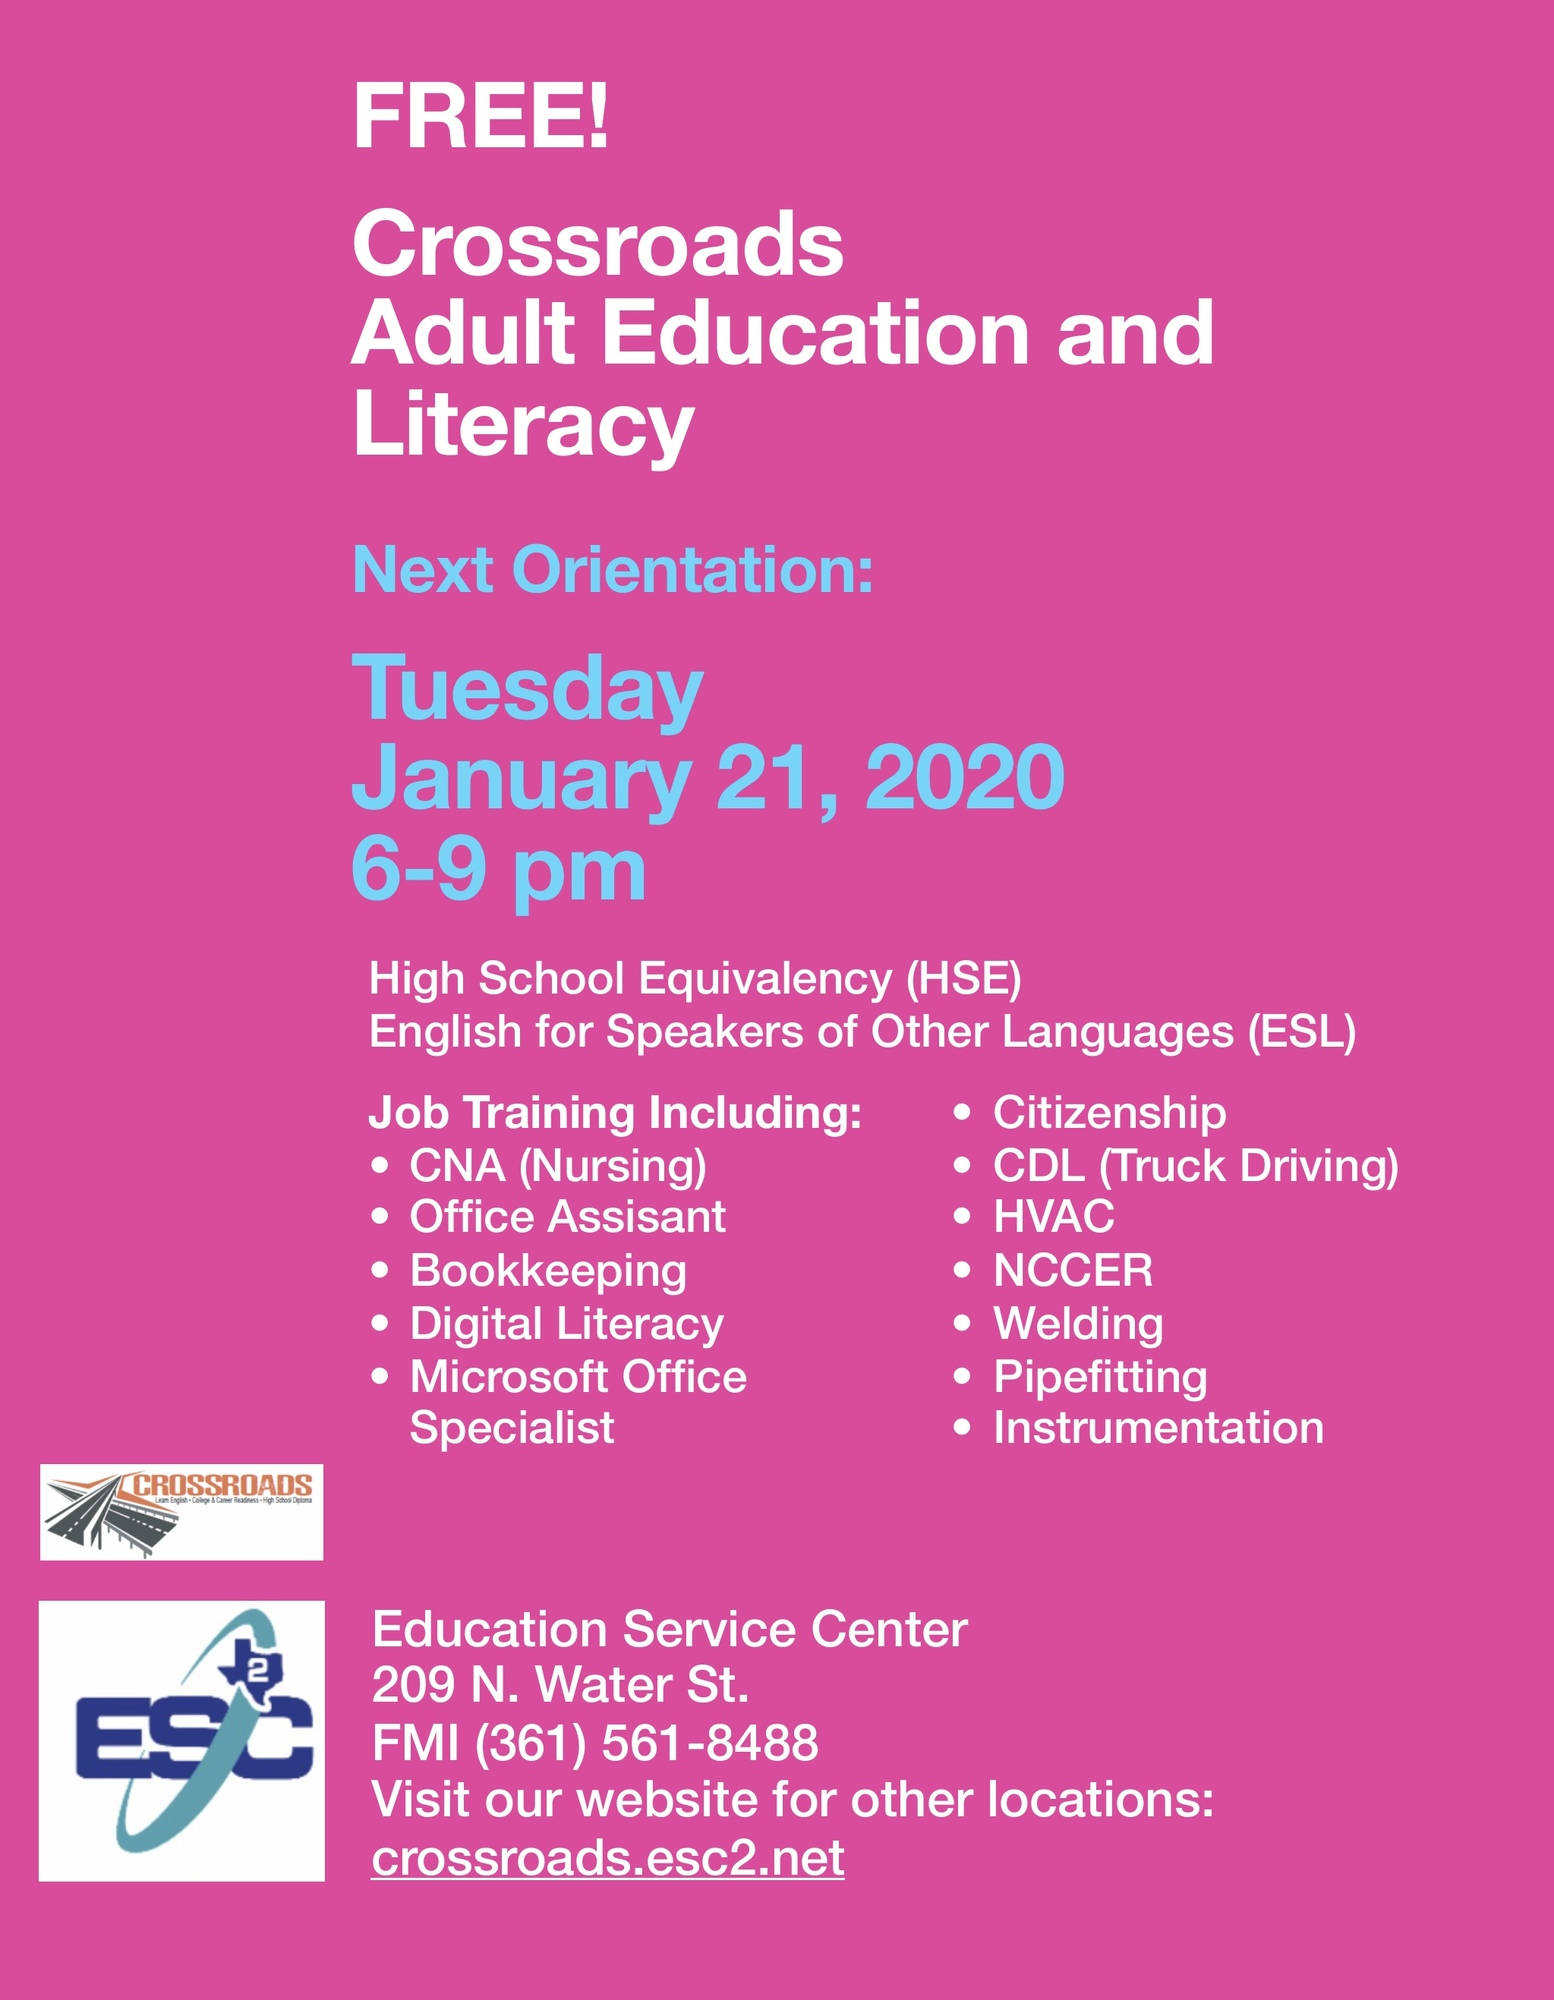 Adult Education and Literacy Orientation January 21